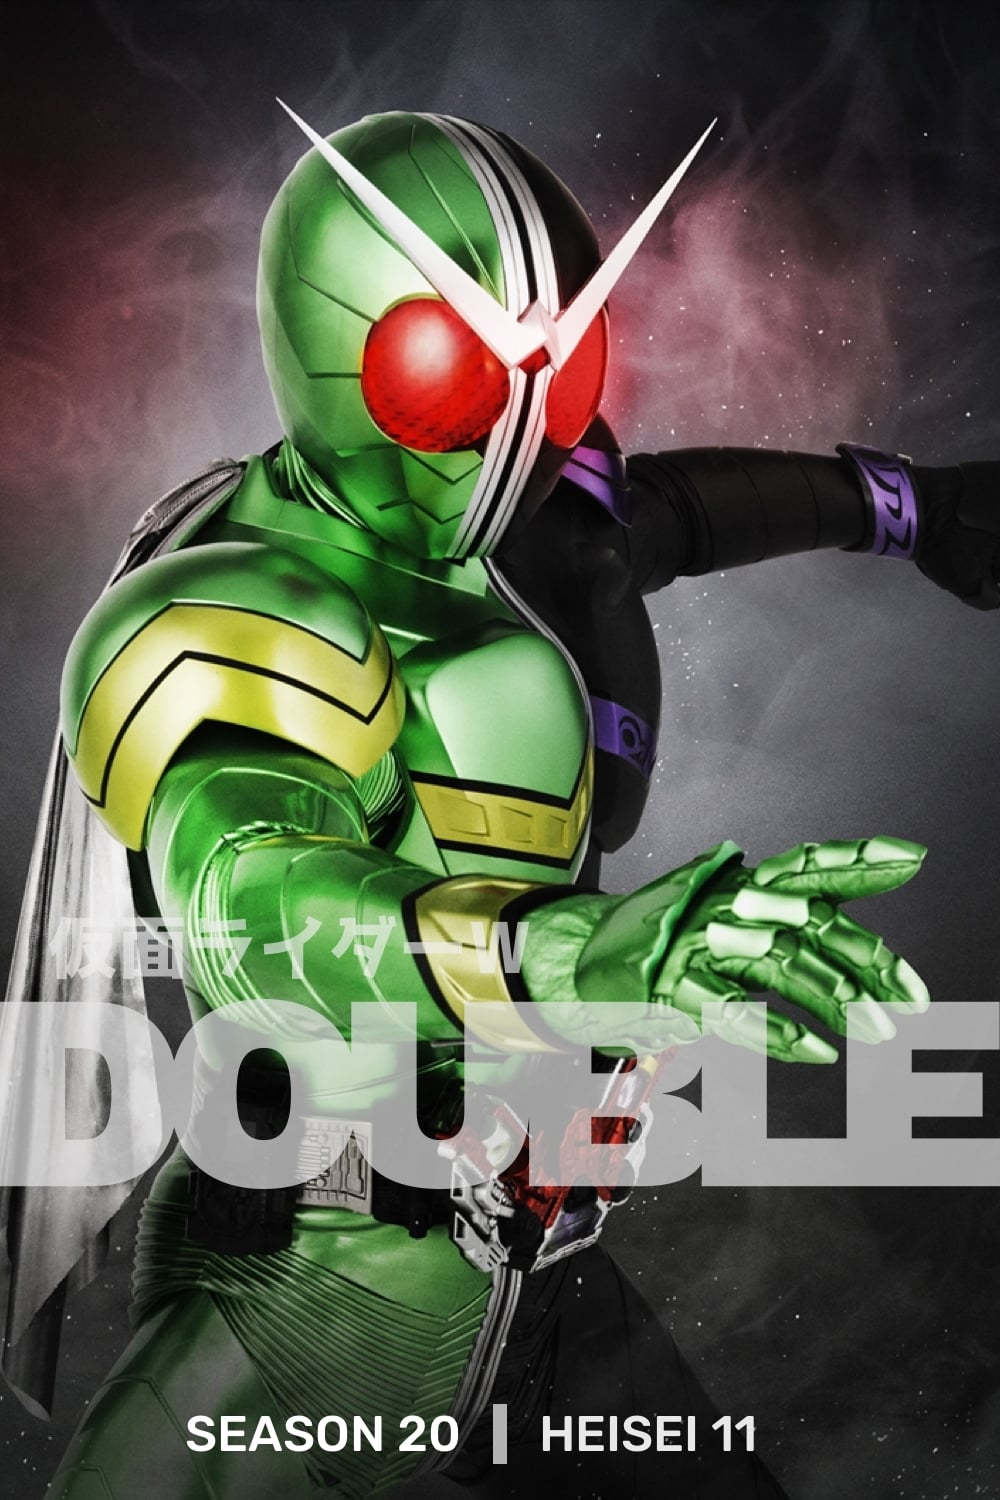 Kamen Rider - Season 21 Episode 31 : Repaying a Favor, Scheme, Purple Medals Season 20